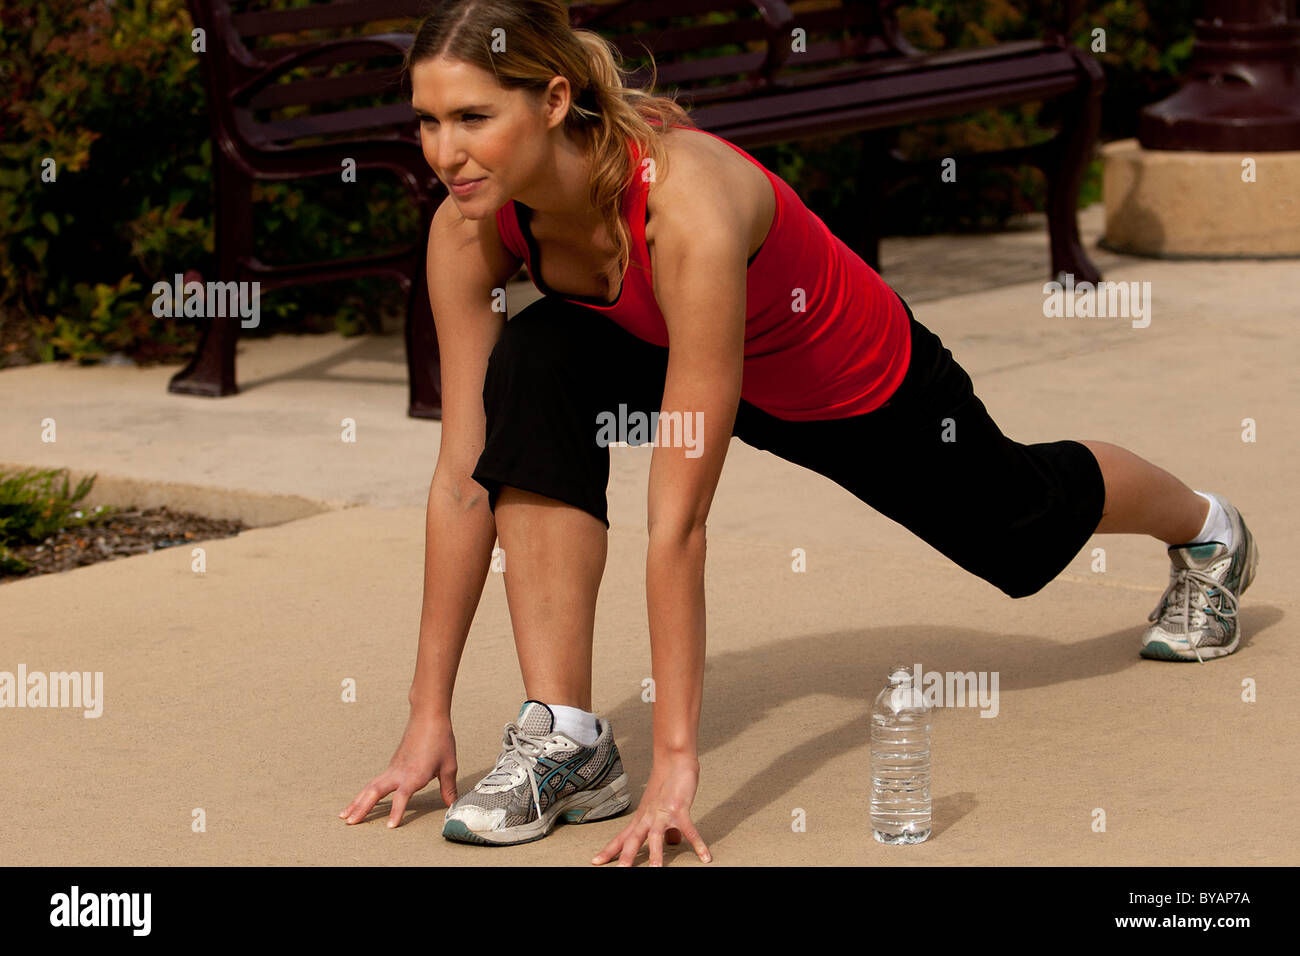 Outdoor spring training exercise in city park showing beautiful young blond Caucasian woman enjoying working out Stock Photo